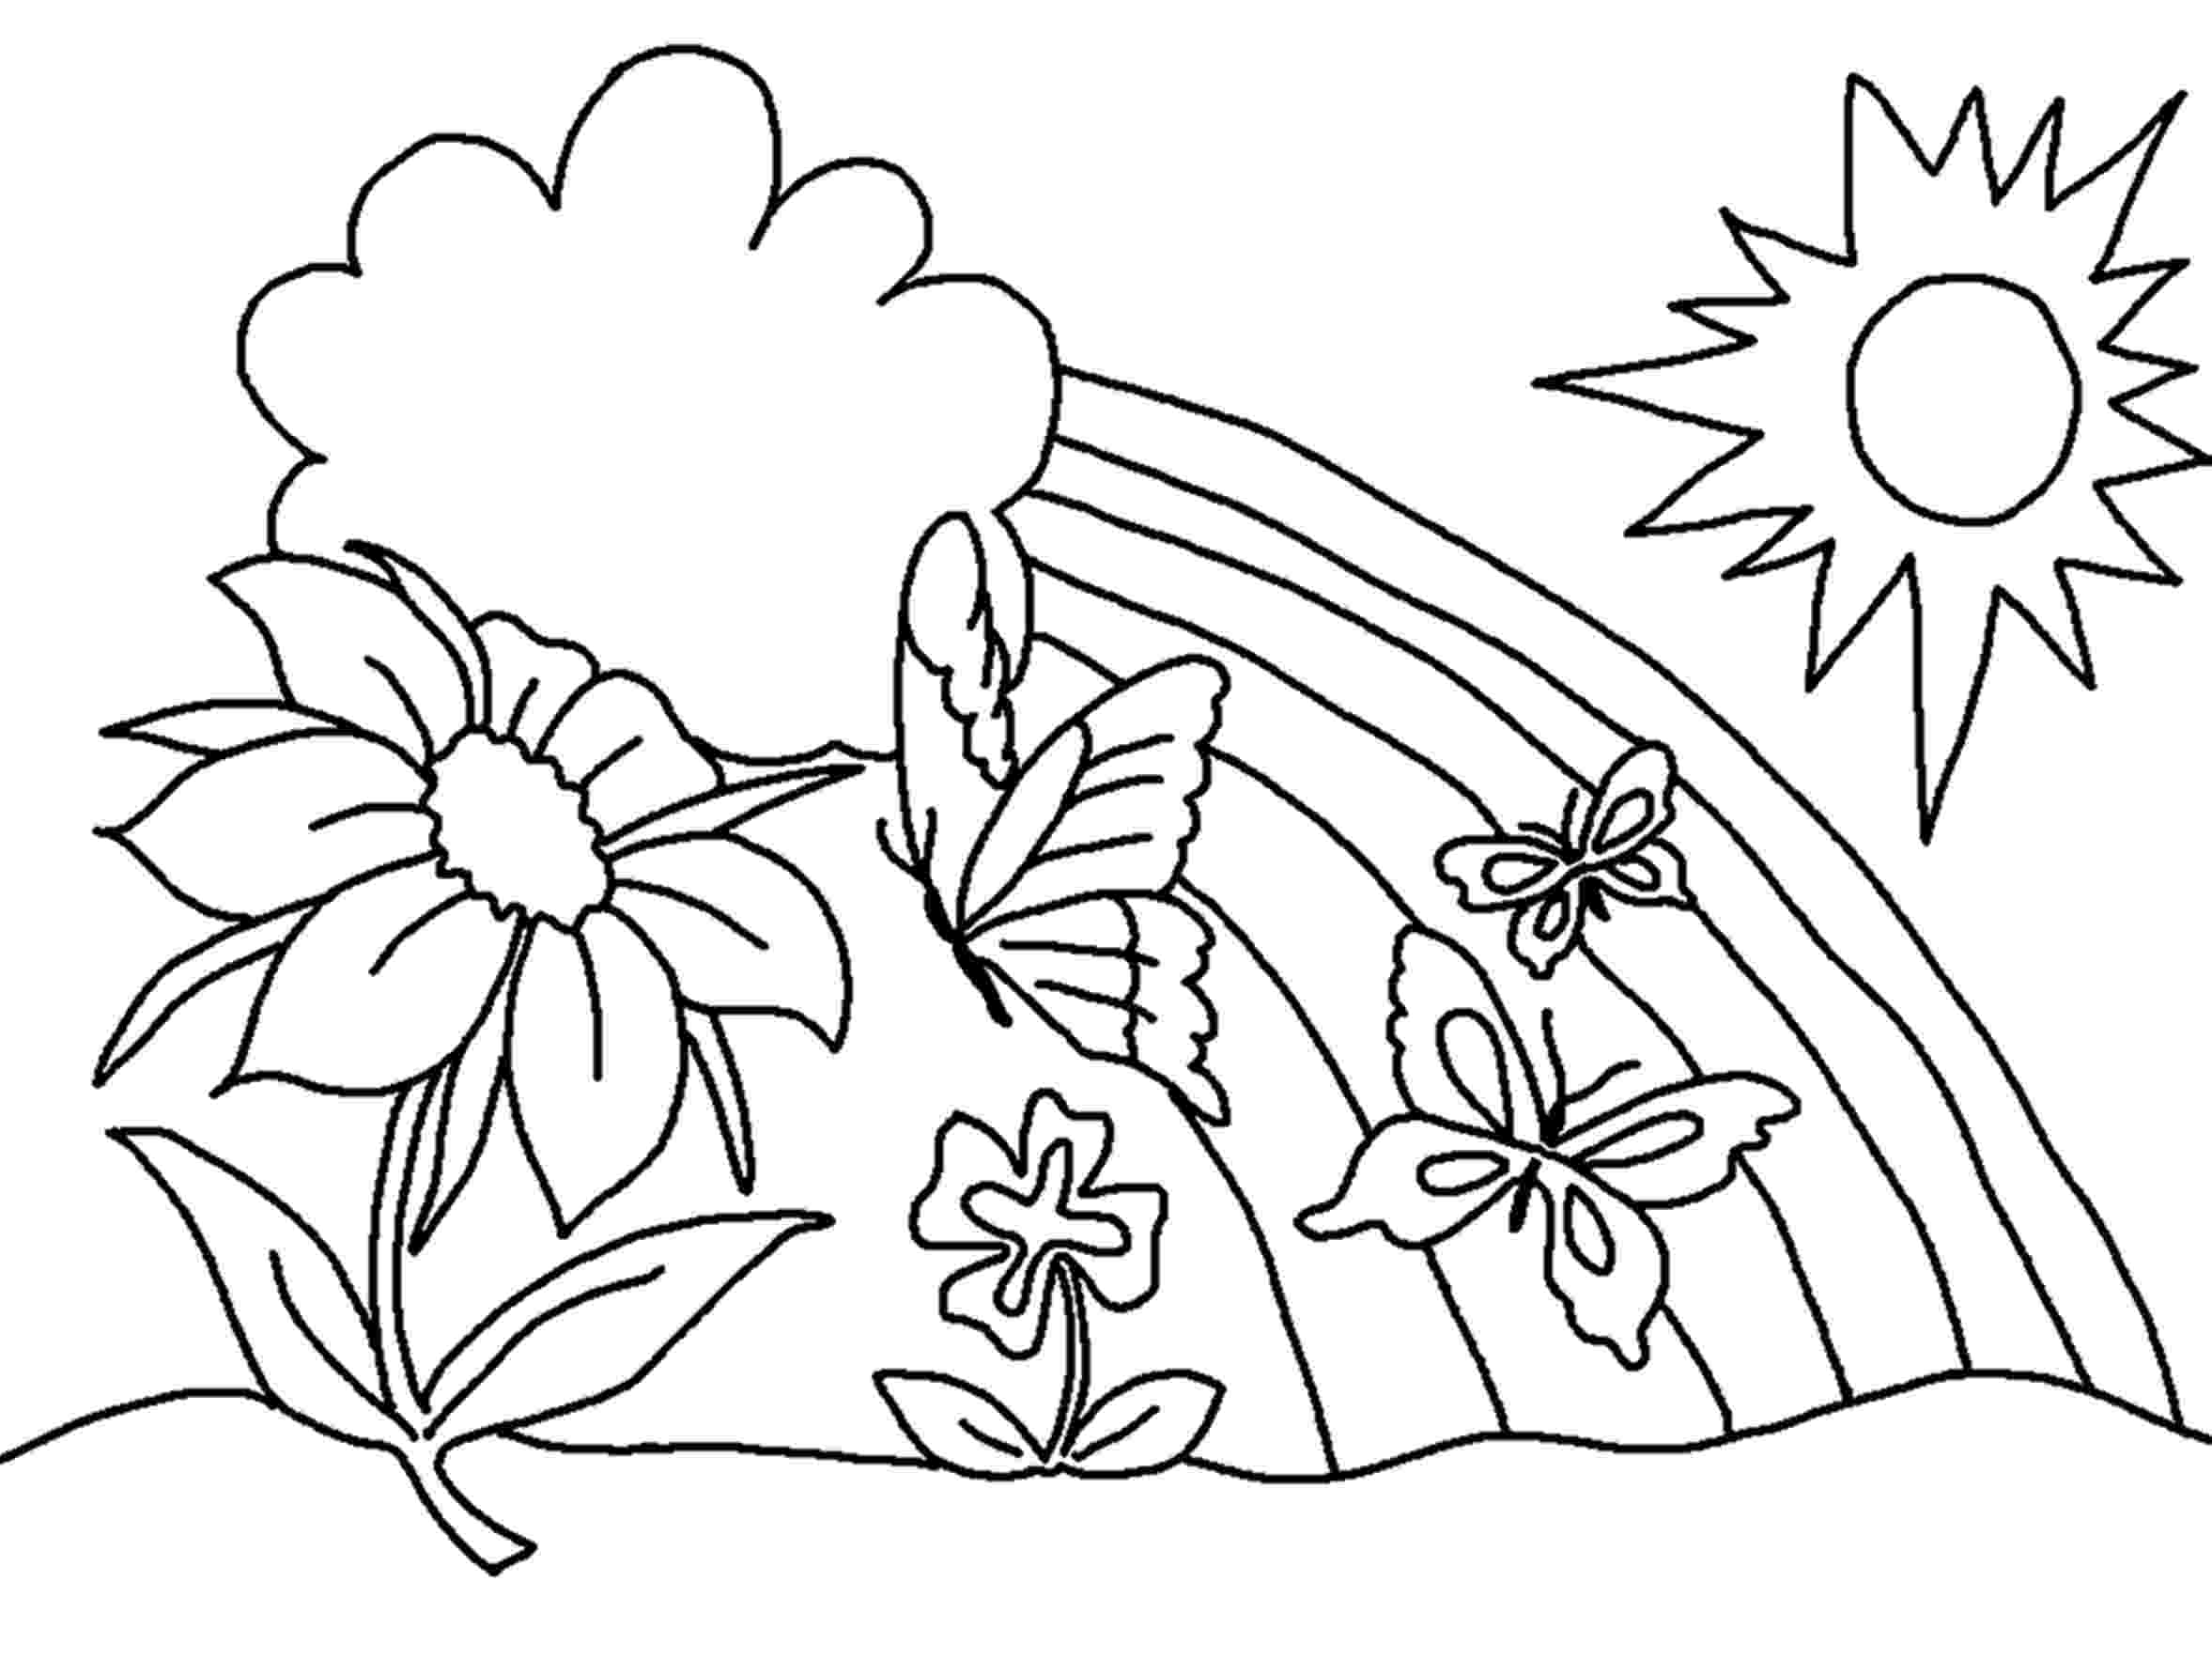 coloring page of flower detailed flower coloring pages to download and print for free coloring flower of page